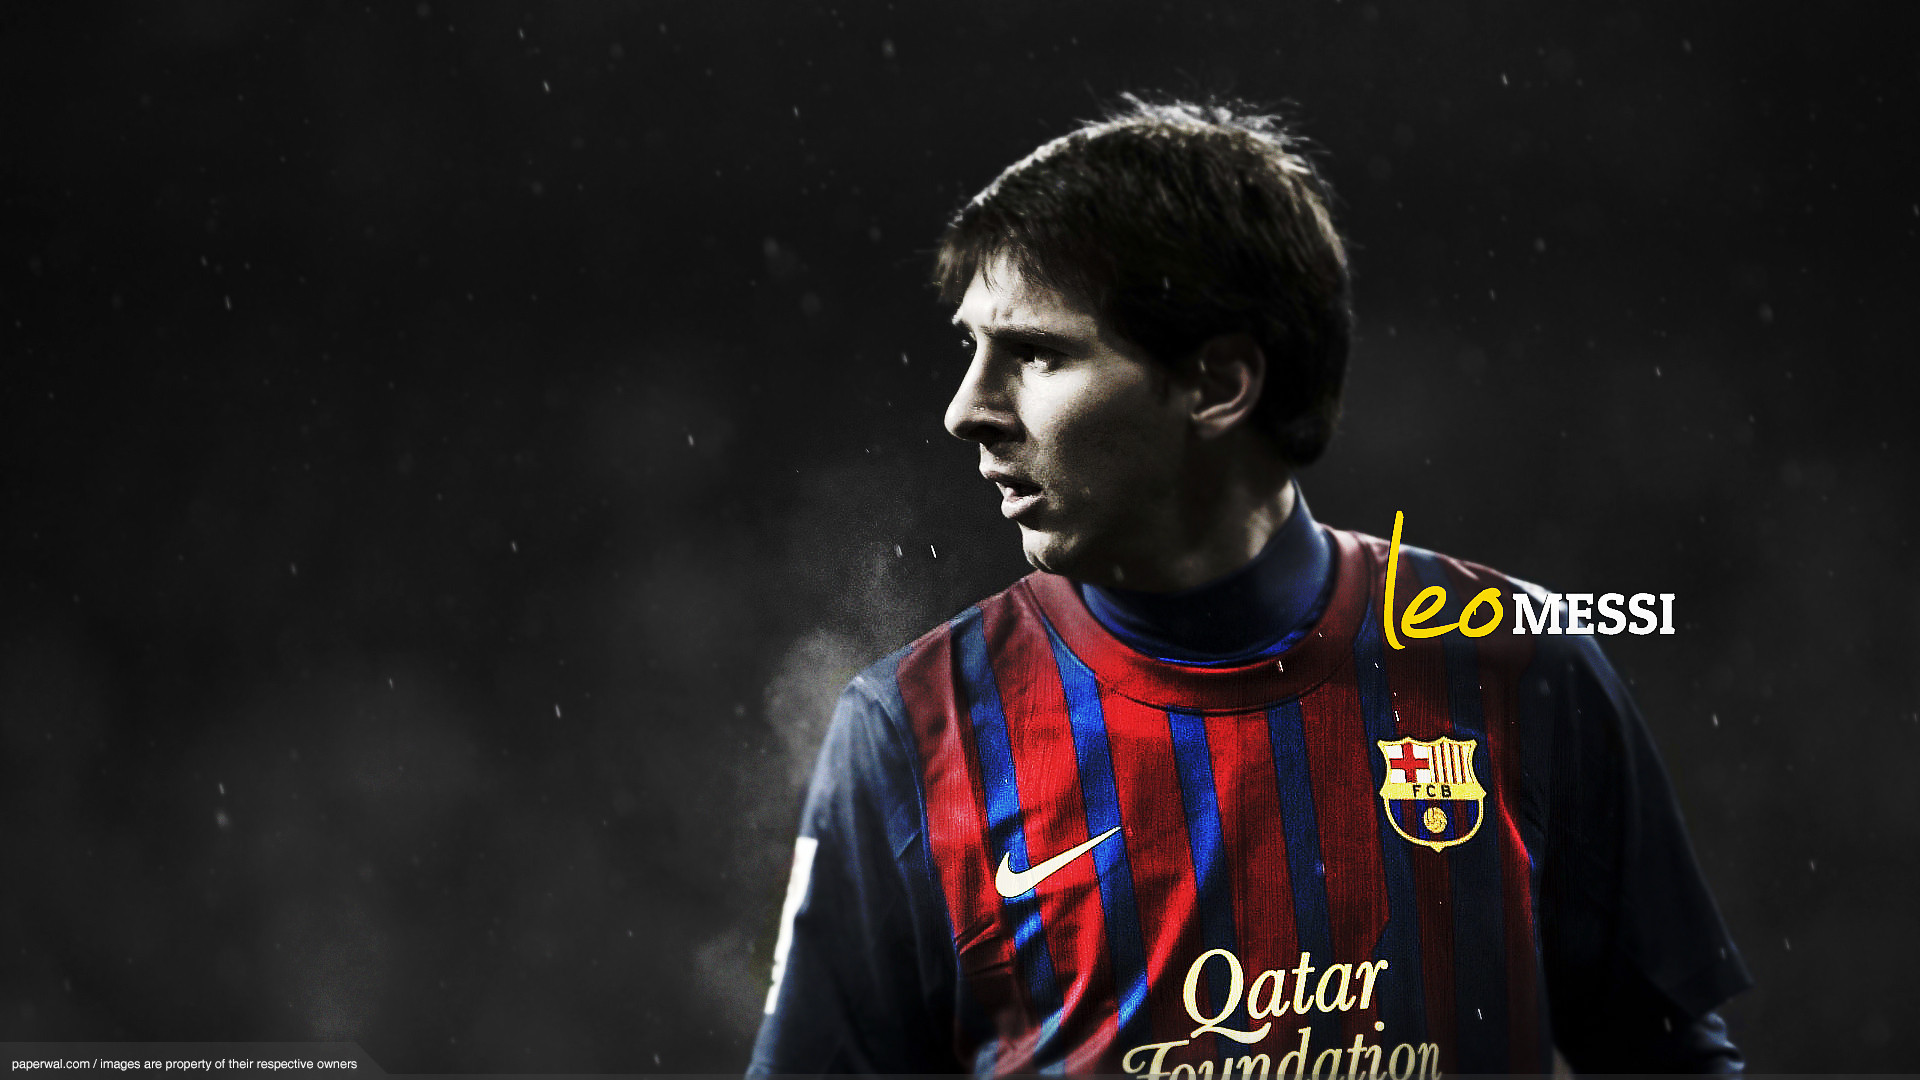 Lionel Messi Wallpapers HD p Free Download for Desktop 1920x1080